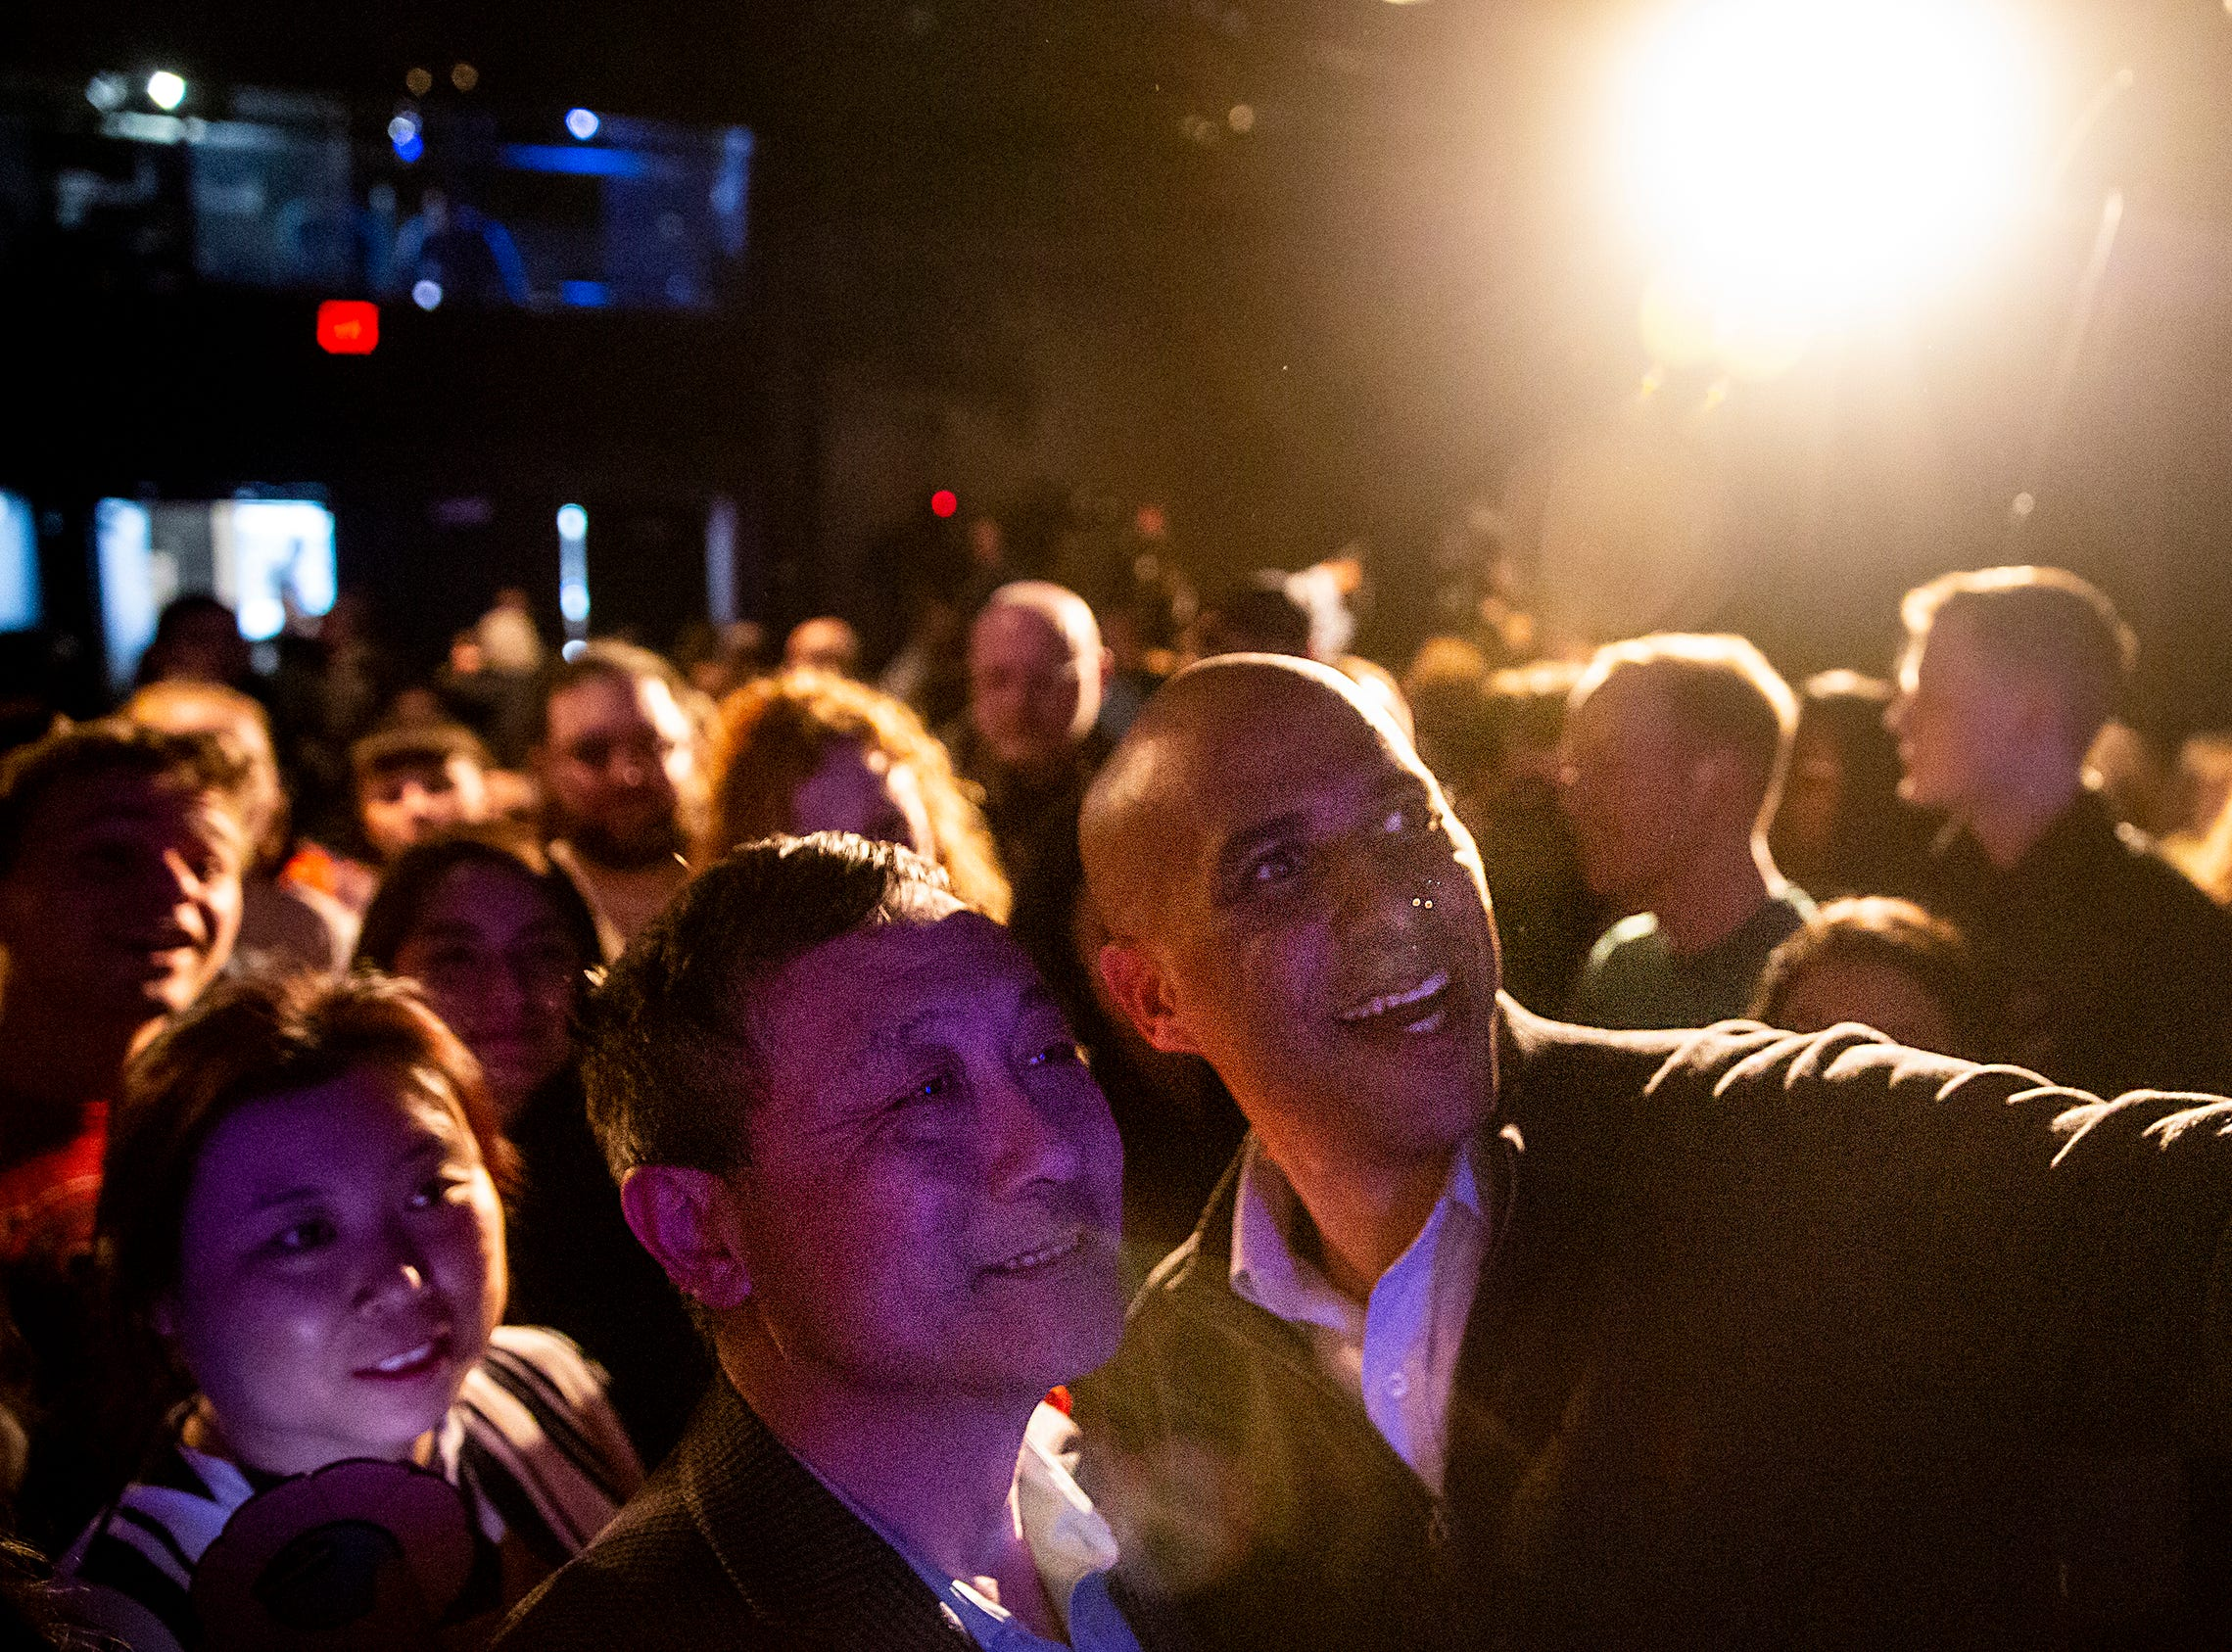 Sen. Cory Booker, D-N.J., takes a selfie with a man in the crowd after speaking to a group of people gathered in the Kum & Go Theater on Saturday, Feb. 9, 2019, in downtown Des Moines. This is Bookers first swing through Iowa after announcing he's running for president.